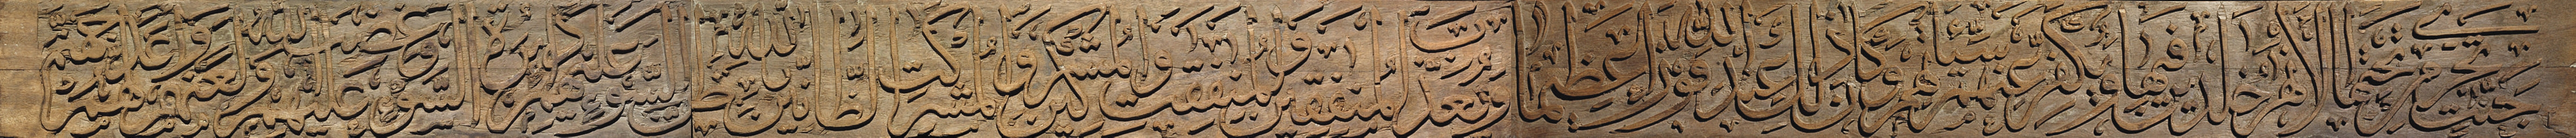 AN OTTOMAN CARVED WOOD INSCRIP